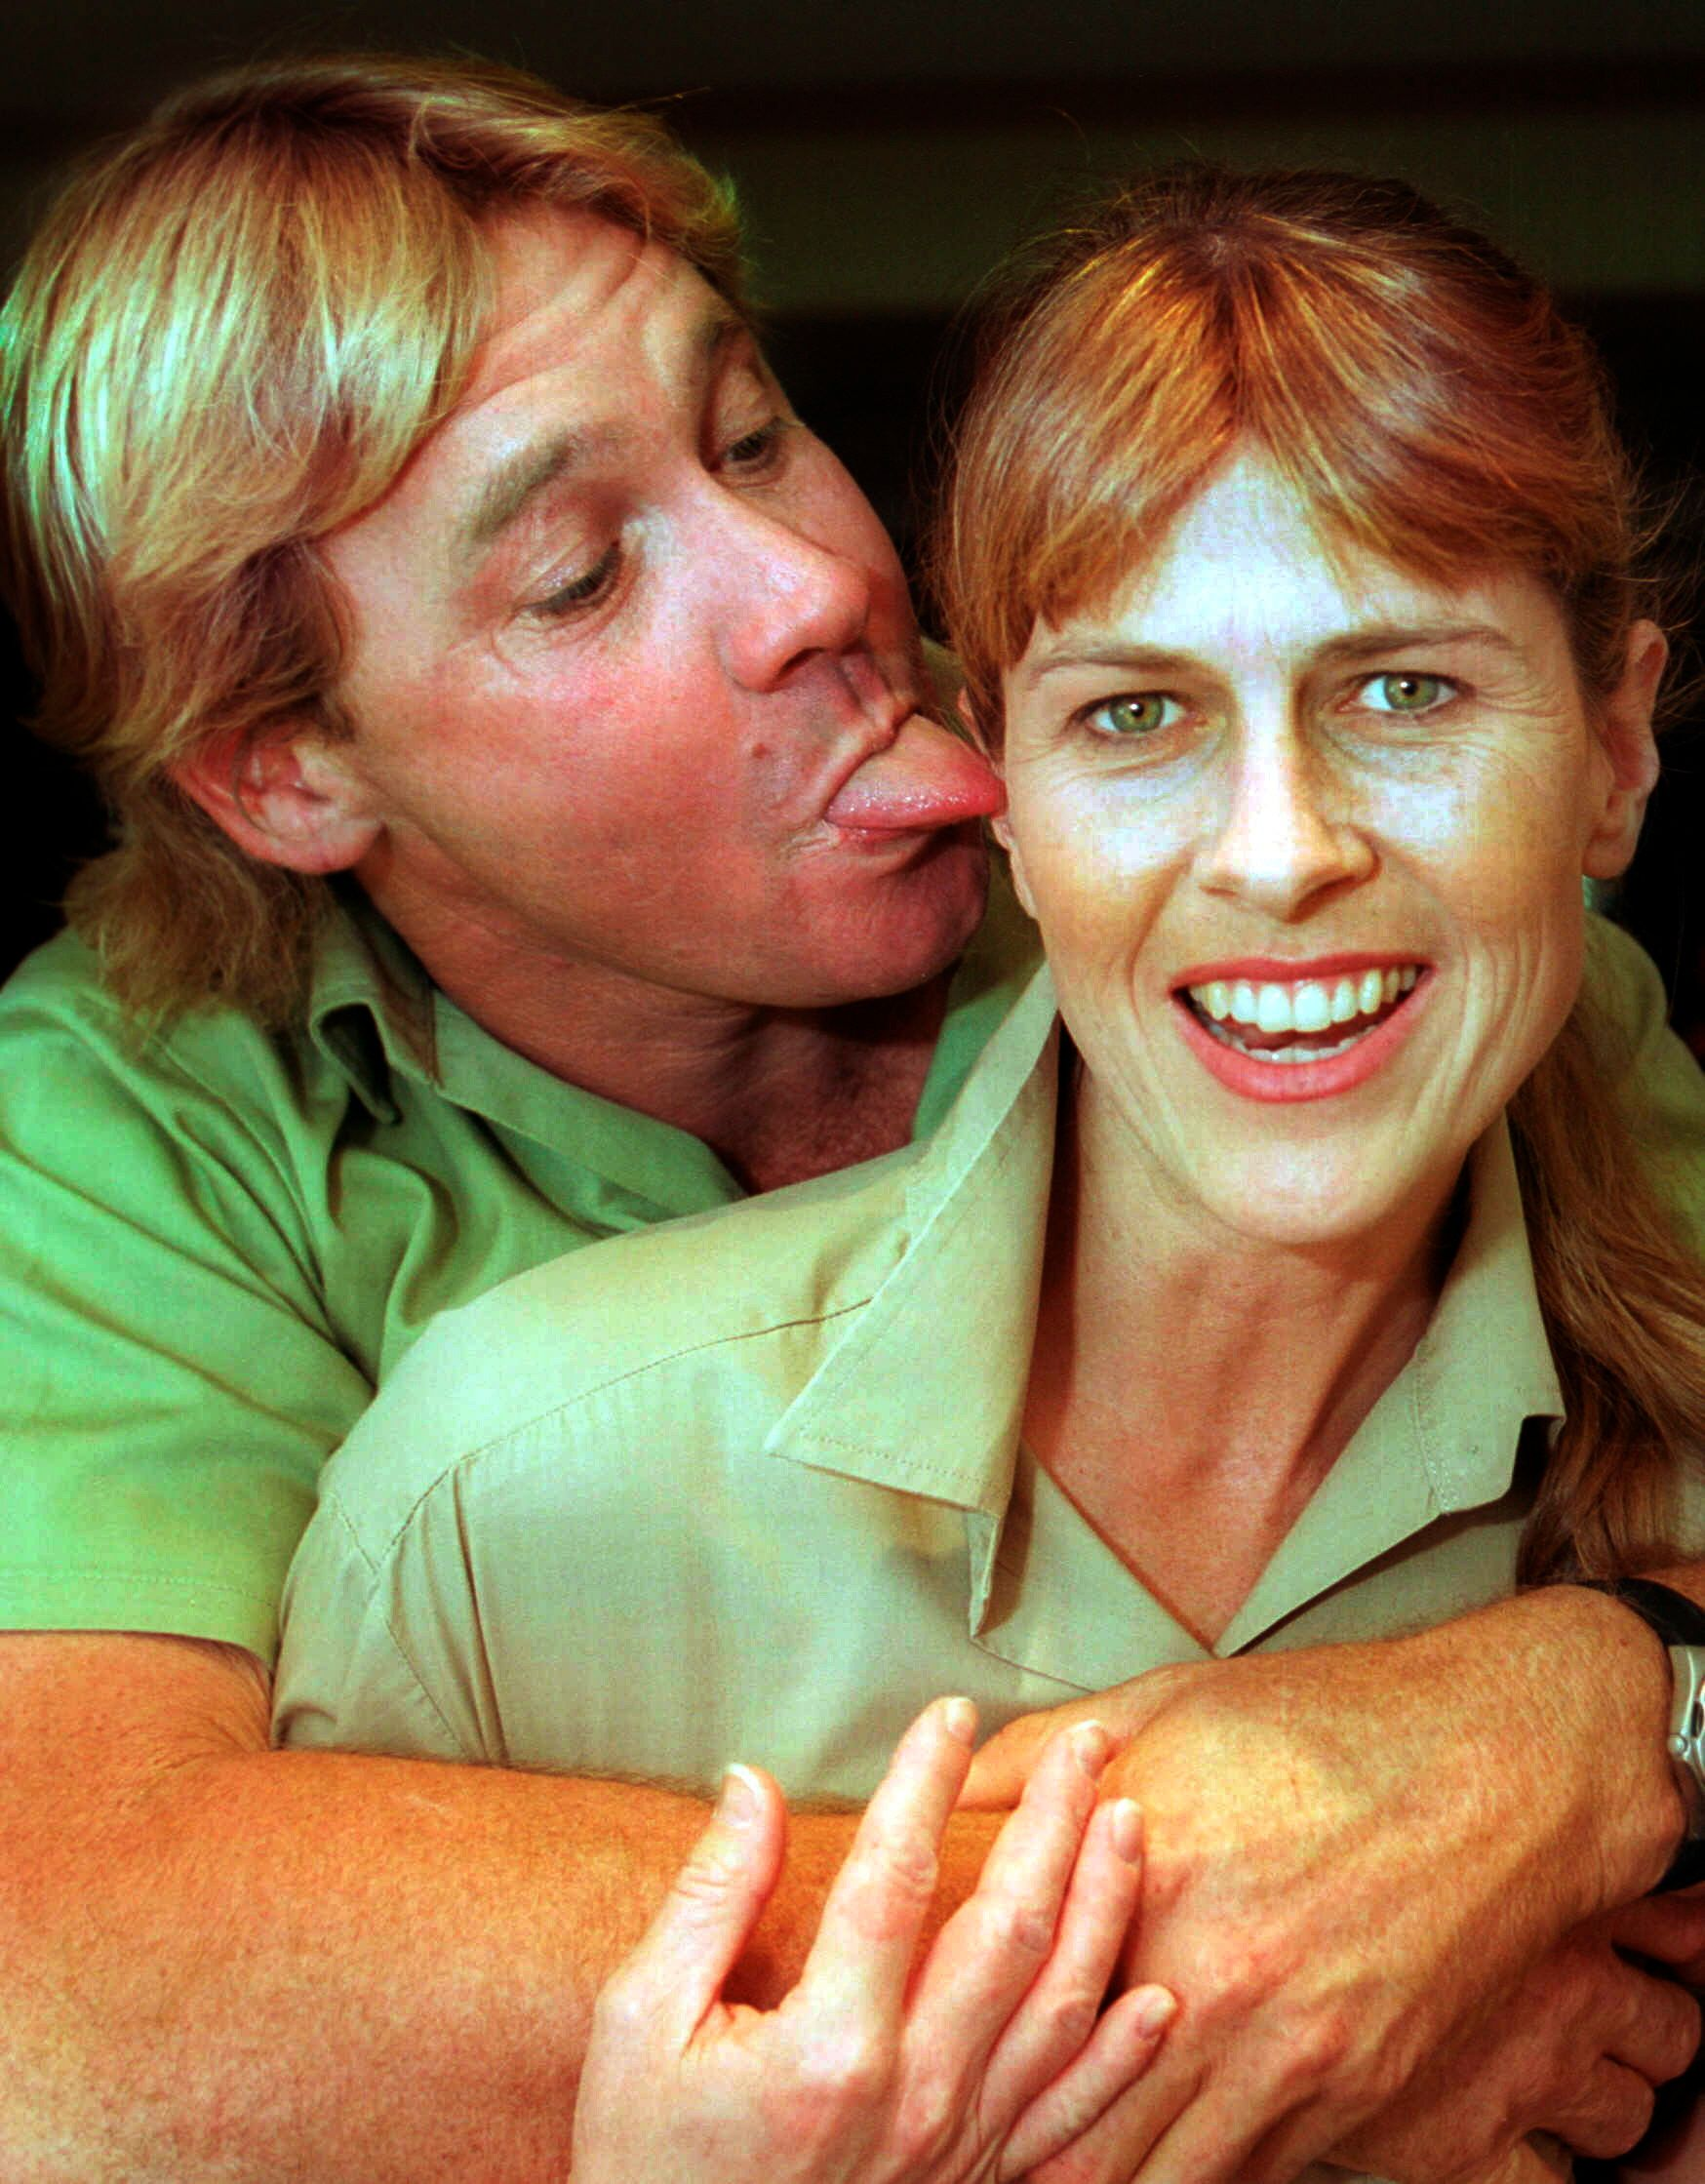 SUNSHINE COAST, AUSTRALIA - SEPTEMBER 10, 2002:  (EUROPE AND AUSTRALASIA OUT) 'Crocodile Hunter' Steve Irwin with his wife, Terri Irwin. (Photo by Newspix/Getty Images)